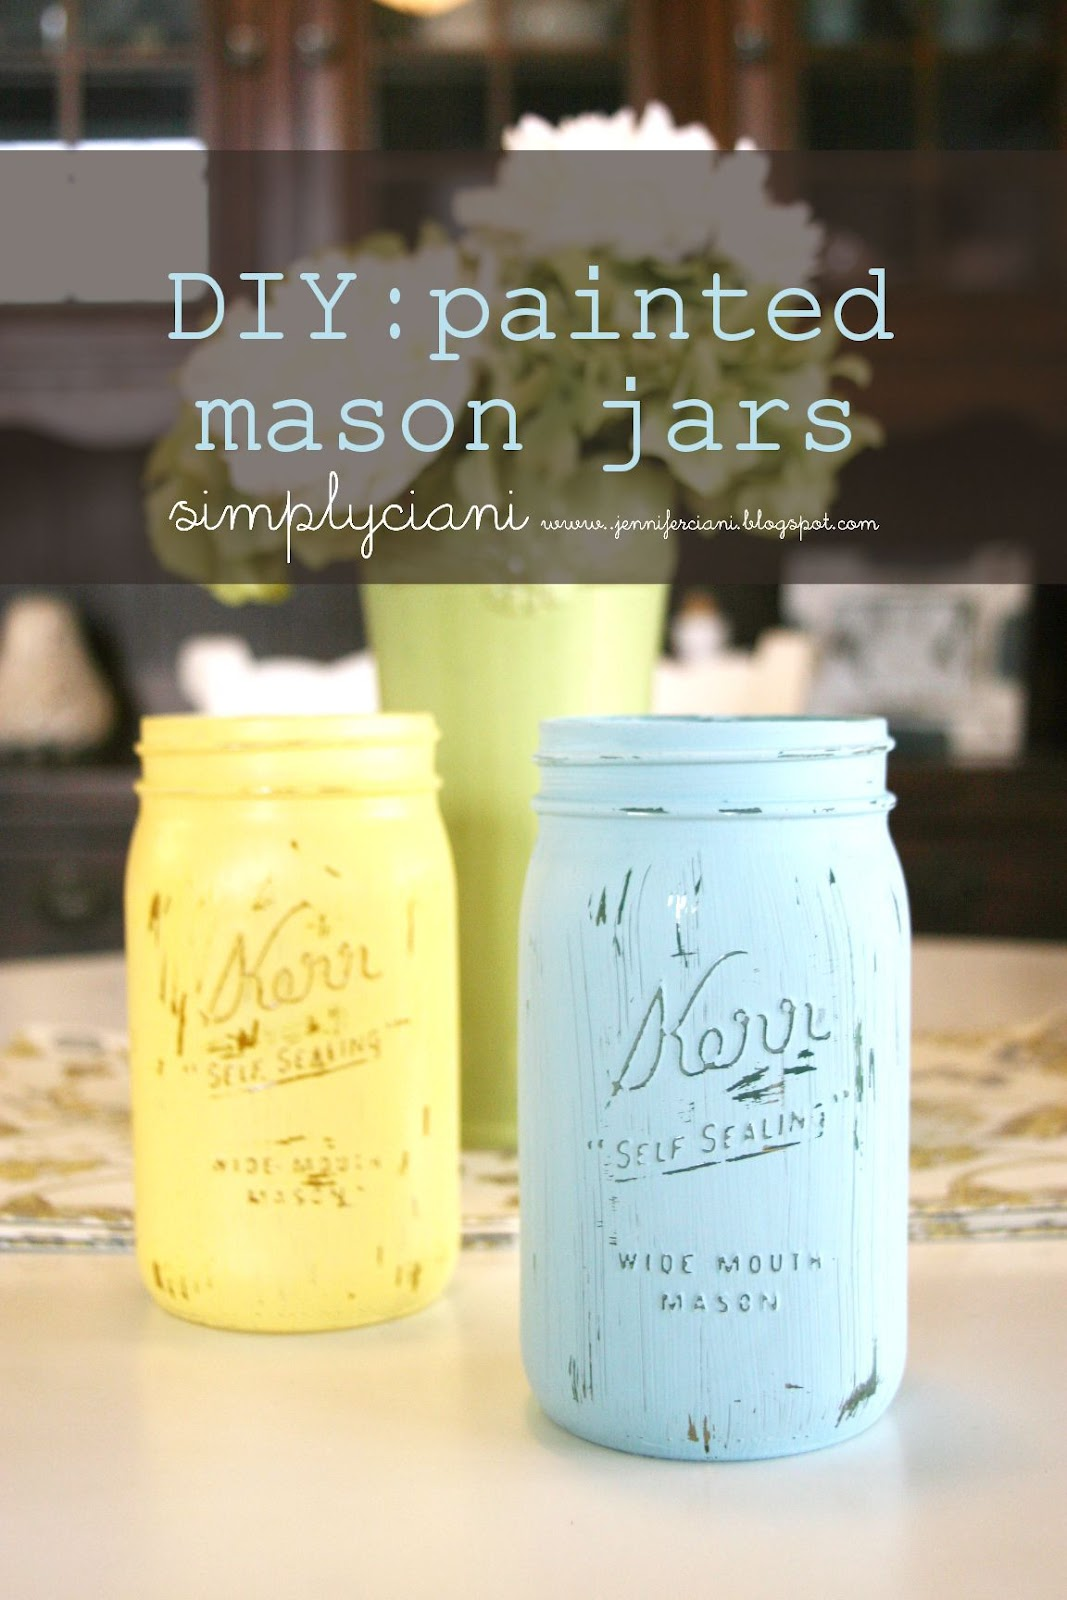 diy painted mason jars simply ciani